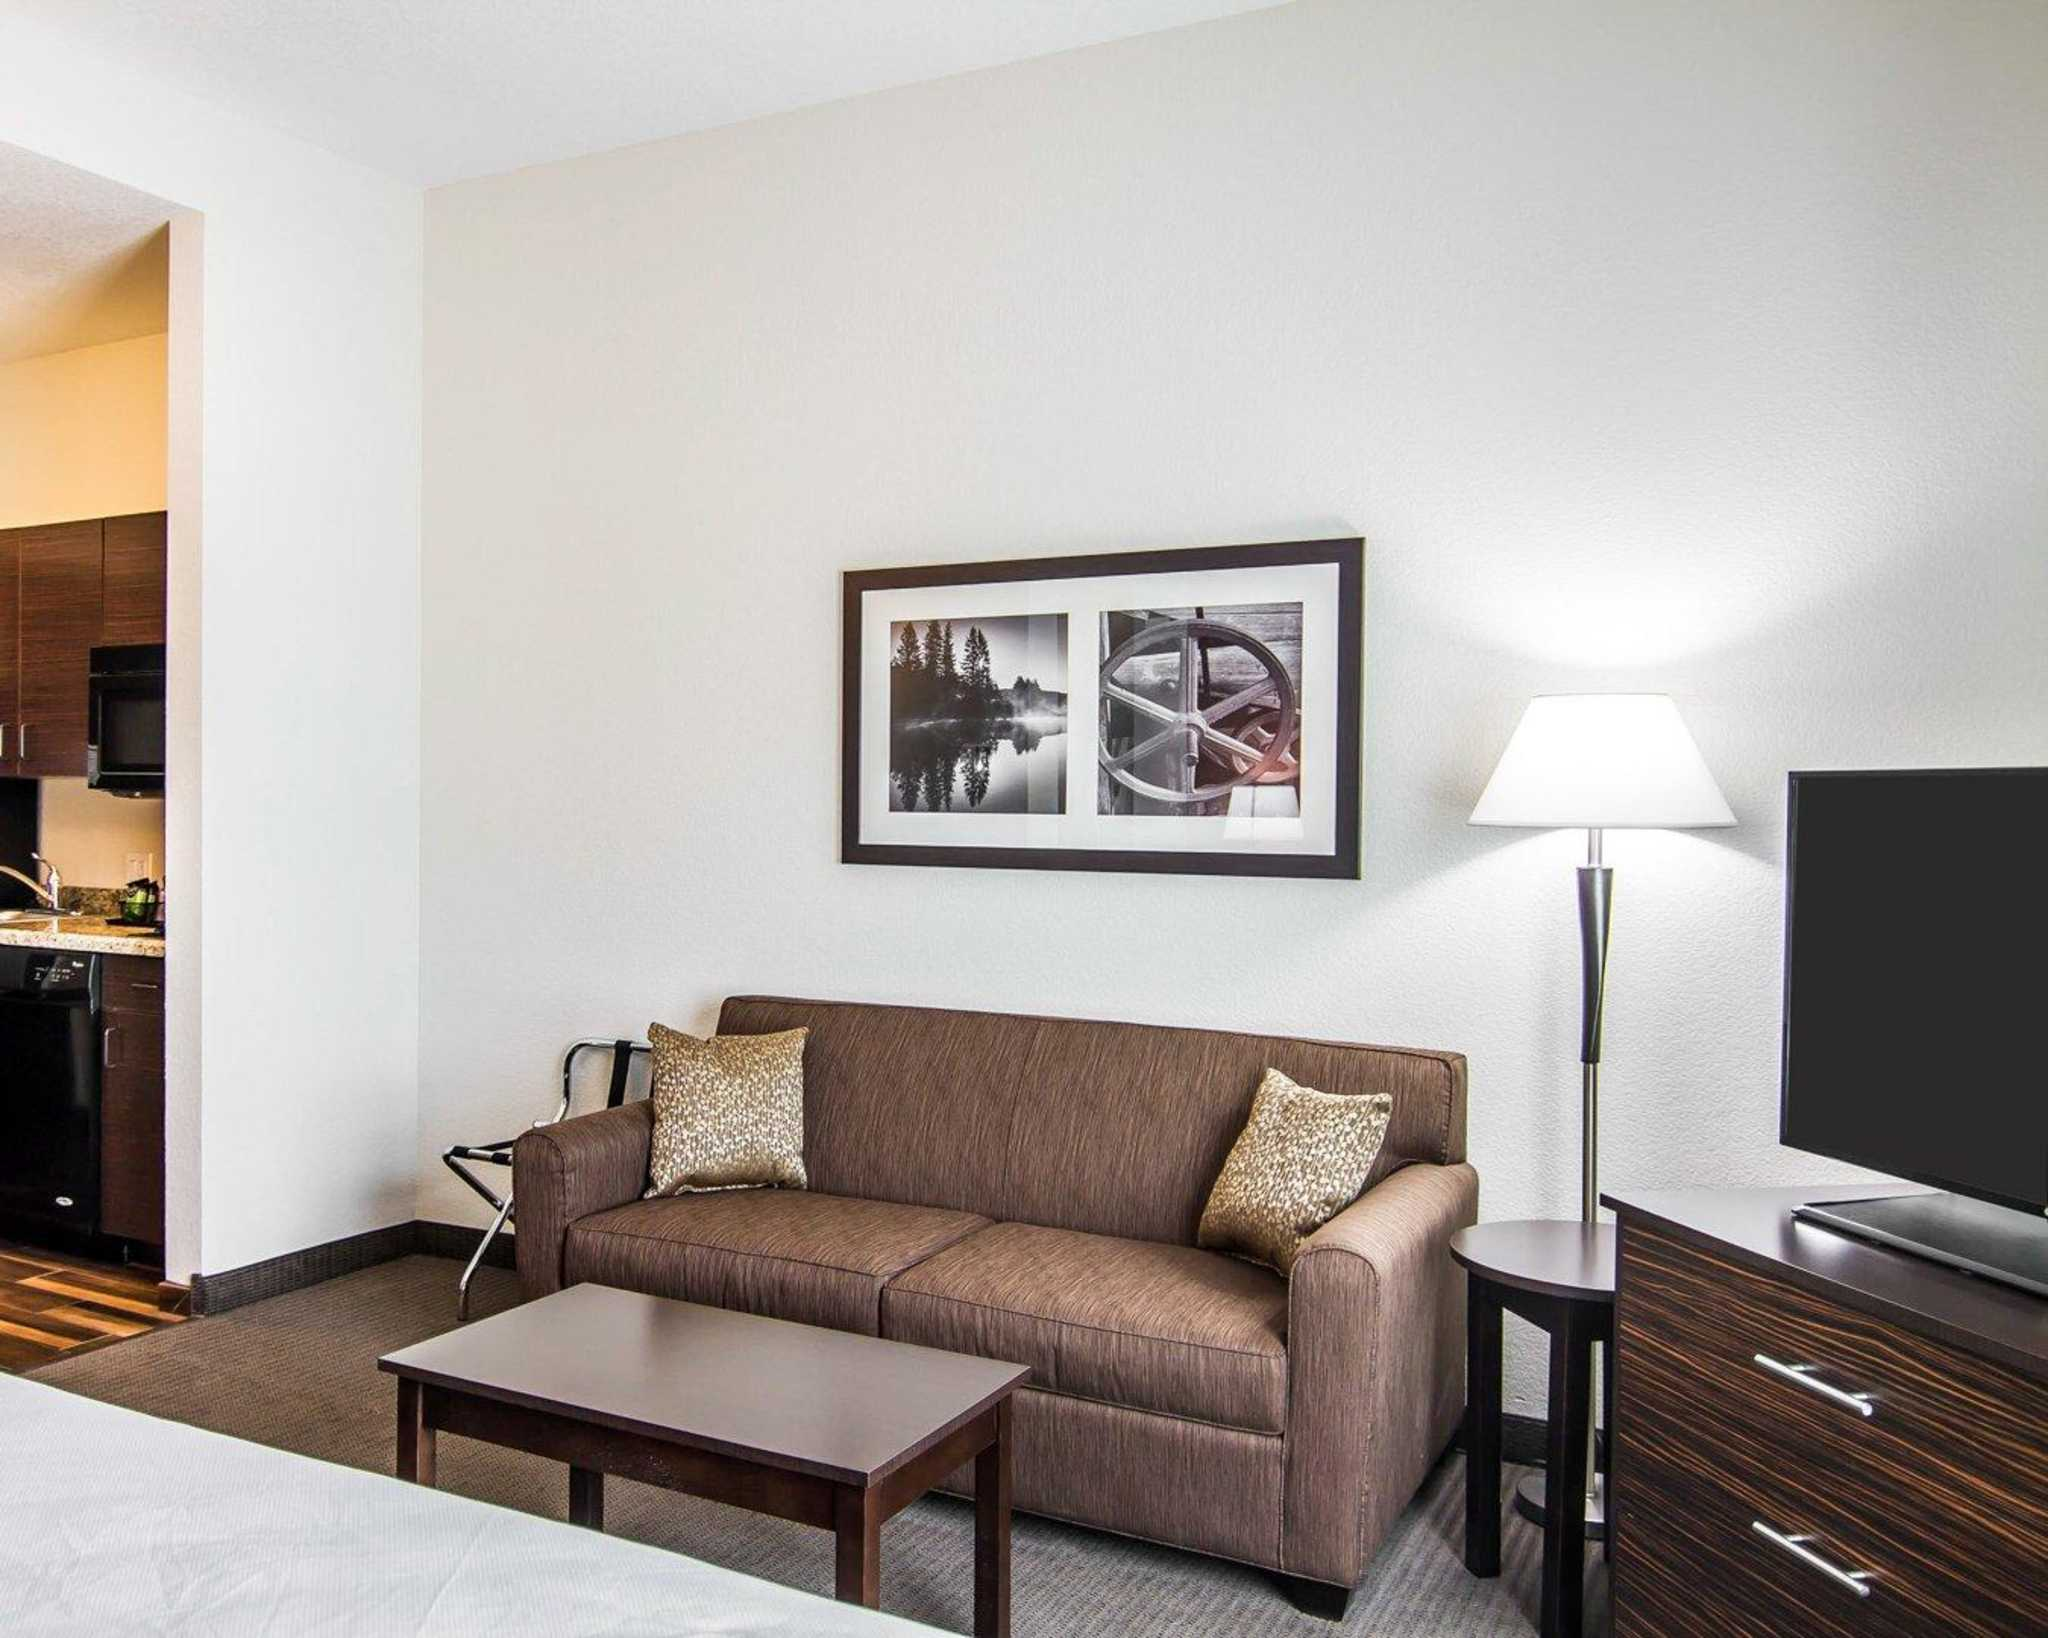 MainStay Suites image 9